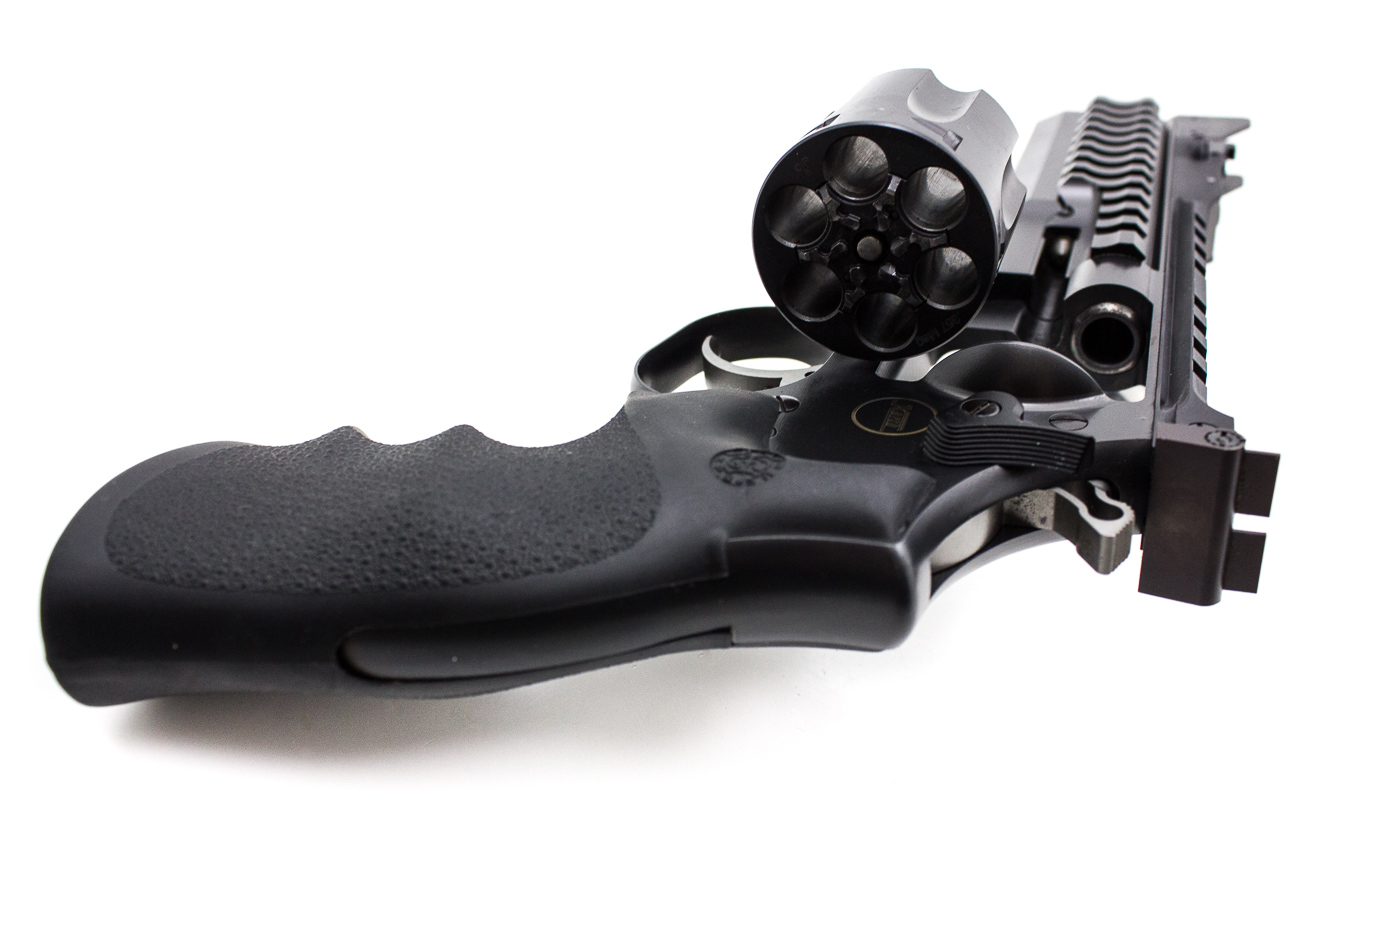 Korth National Standard Supersport STX .357 Magnum inkl. Wechseltrommel - Image 6